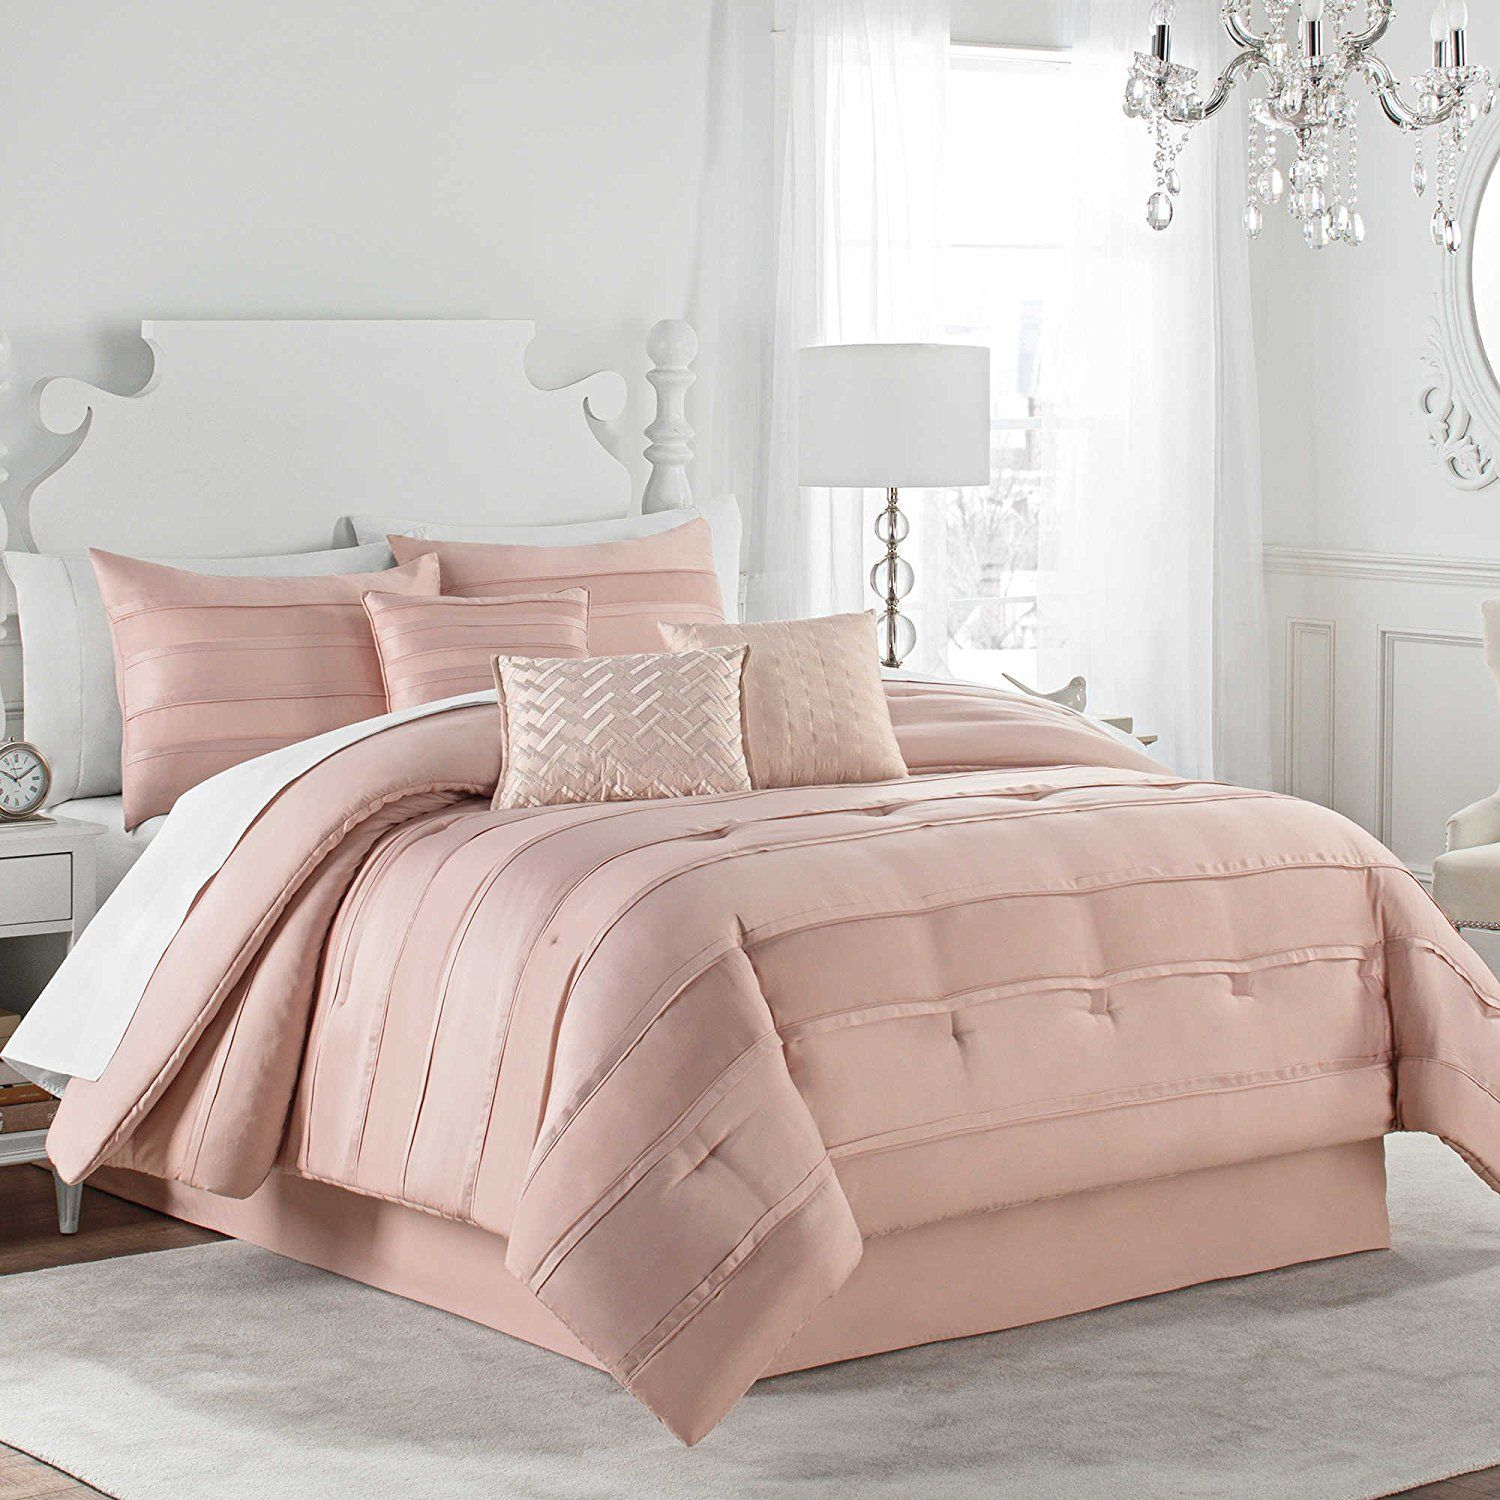 Blush Pink Quilt Cover New Matte Satin Pleated Luxury Elegant 7 Piece King Size